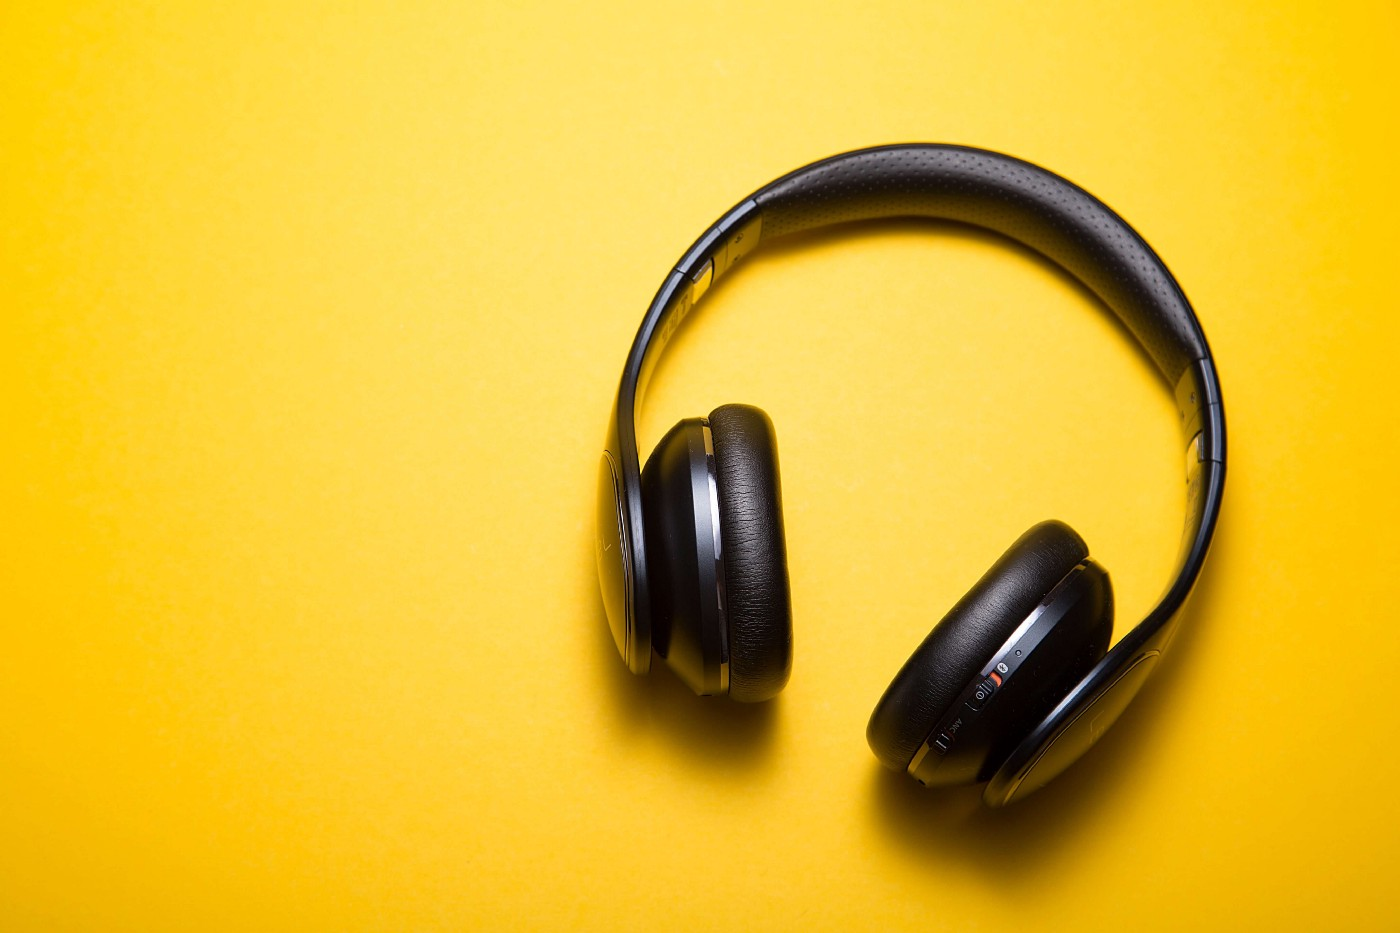 Headphones on a bright yellow background.